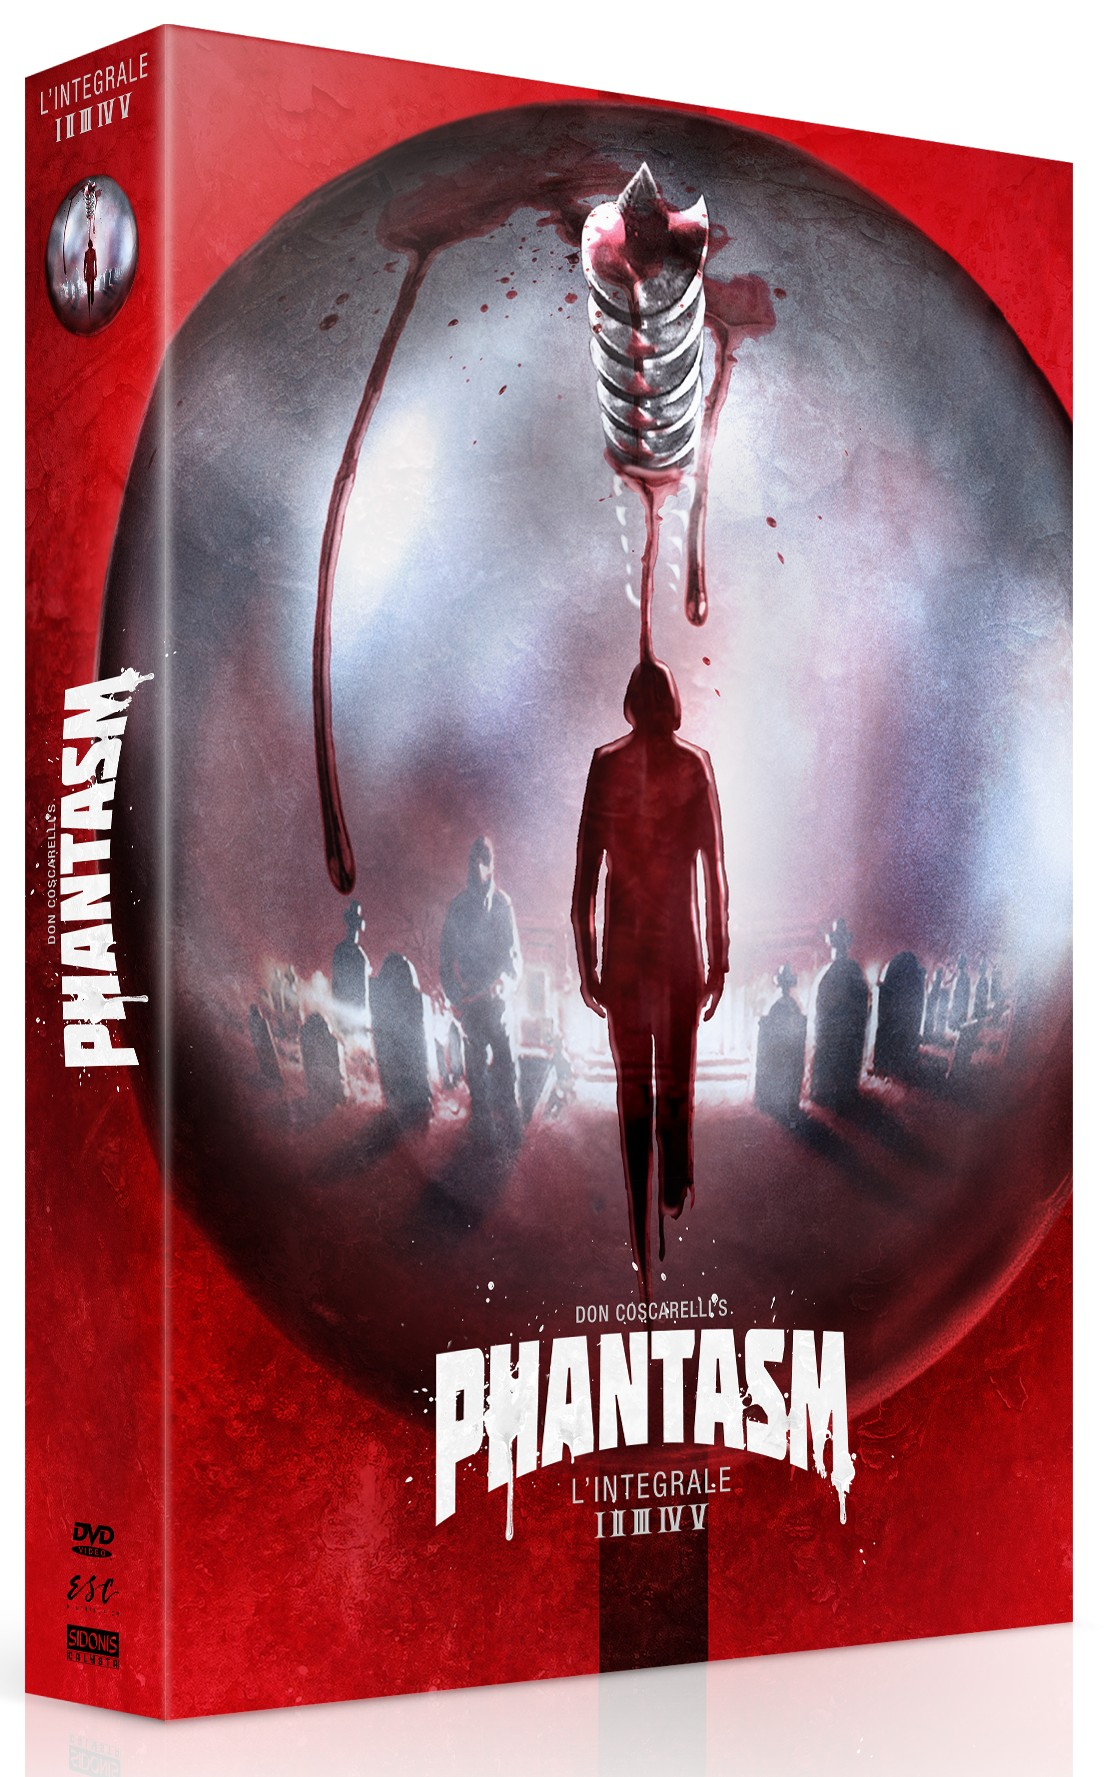 PHANTASM L'INTEGRALE CULT'EDITION DVD COLLECTOR